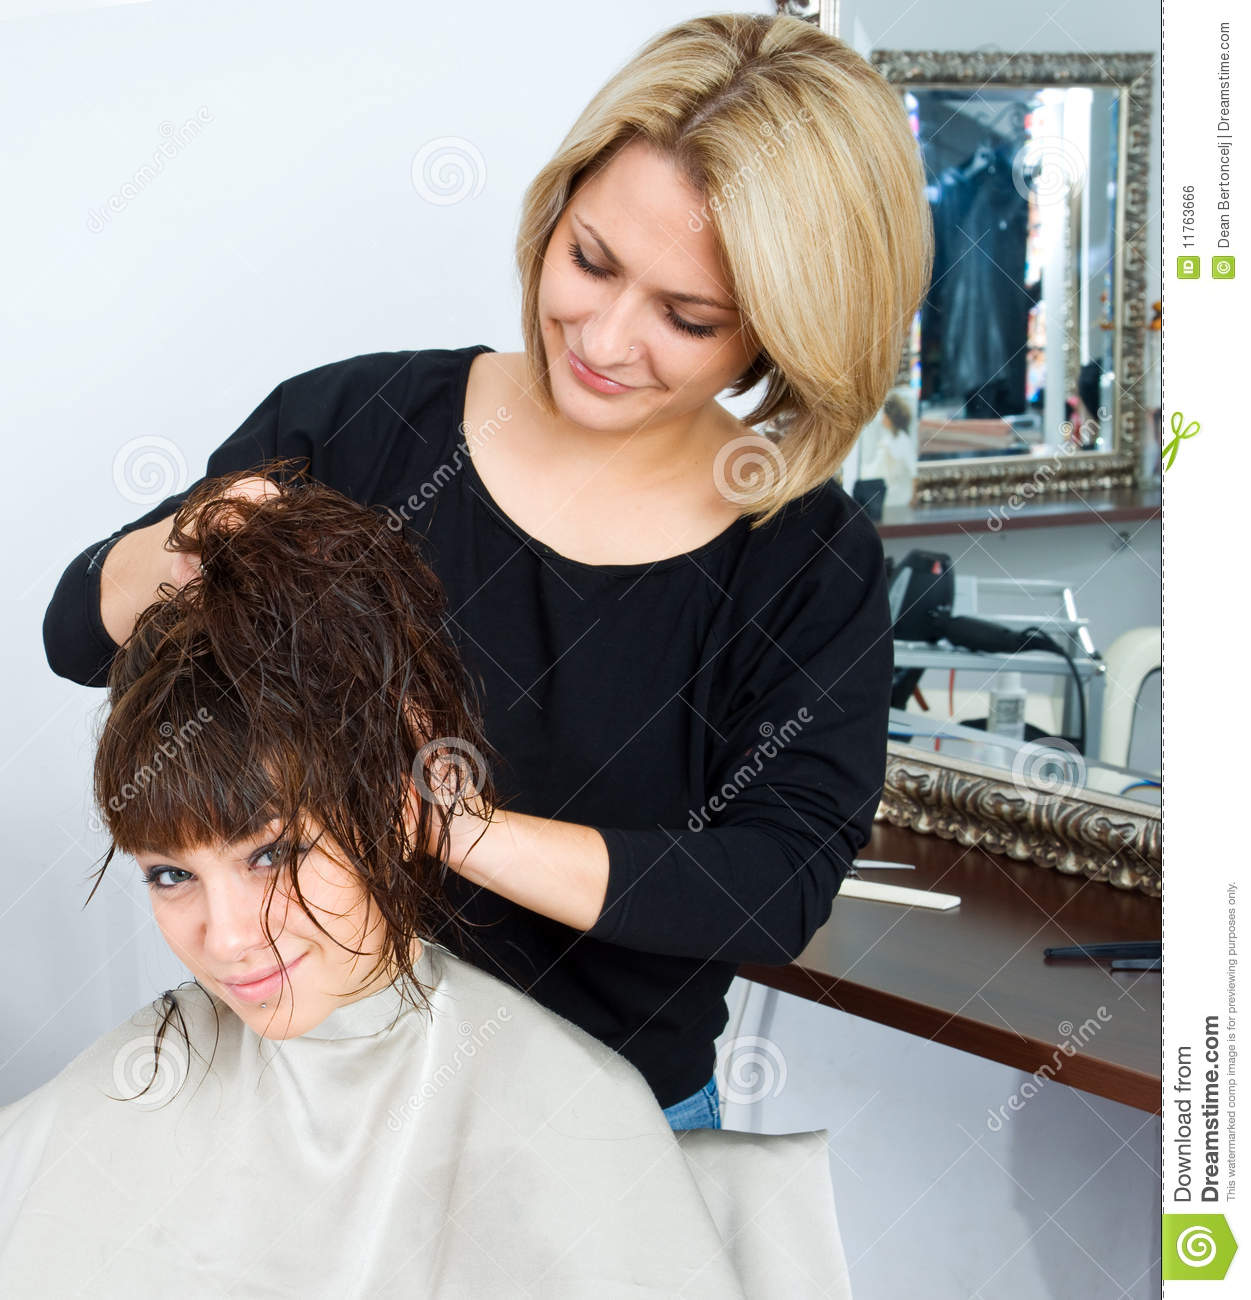 Hair Stylist In Work Stock Photo Image Of Fashion Rollers 11763666